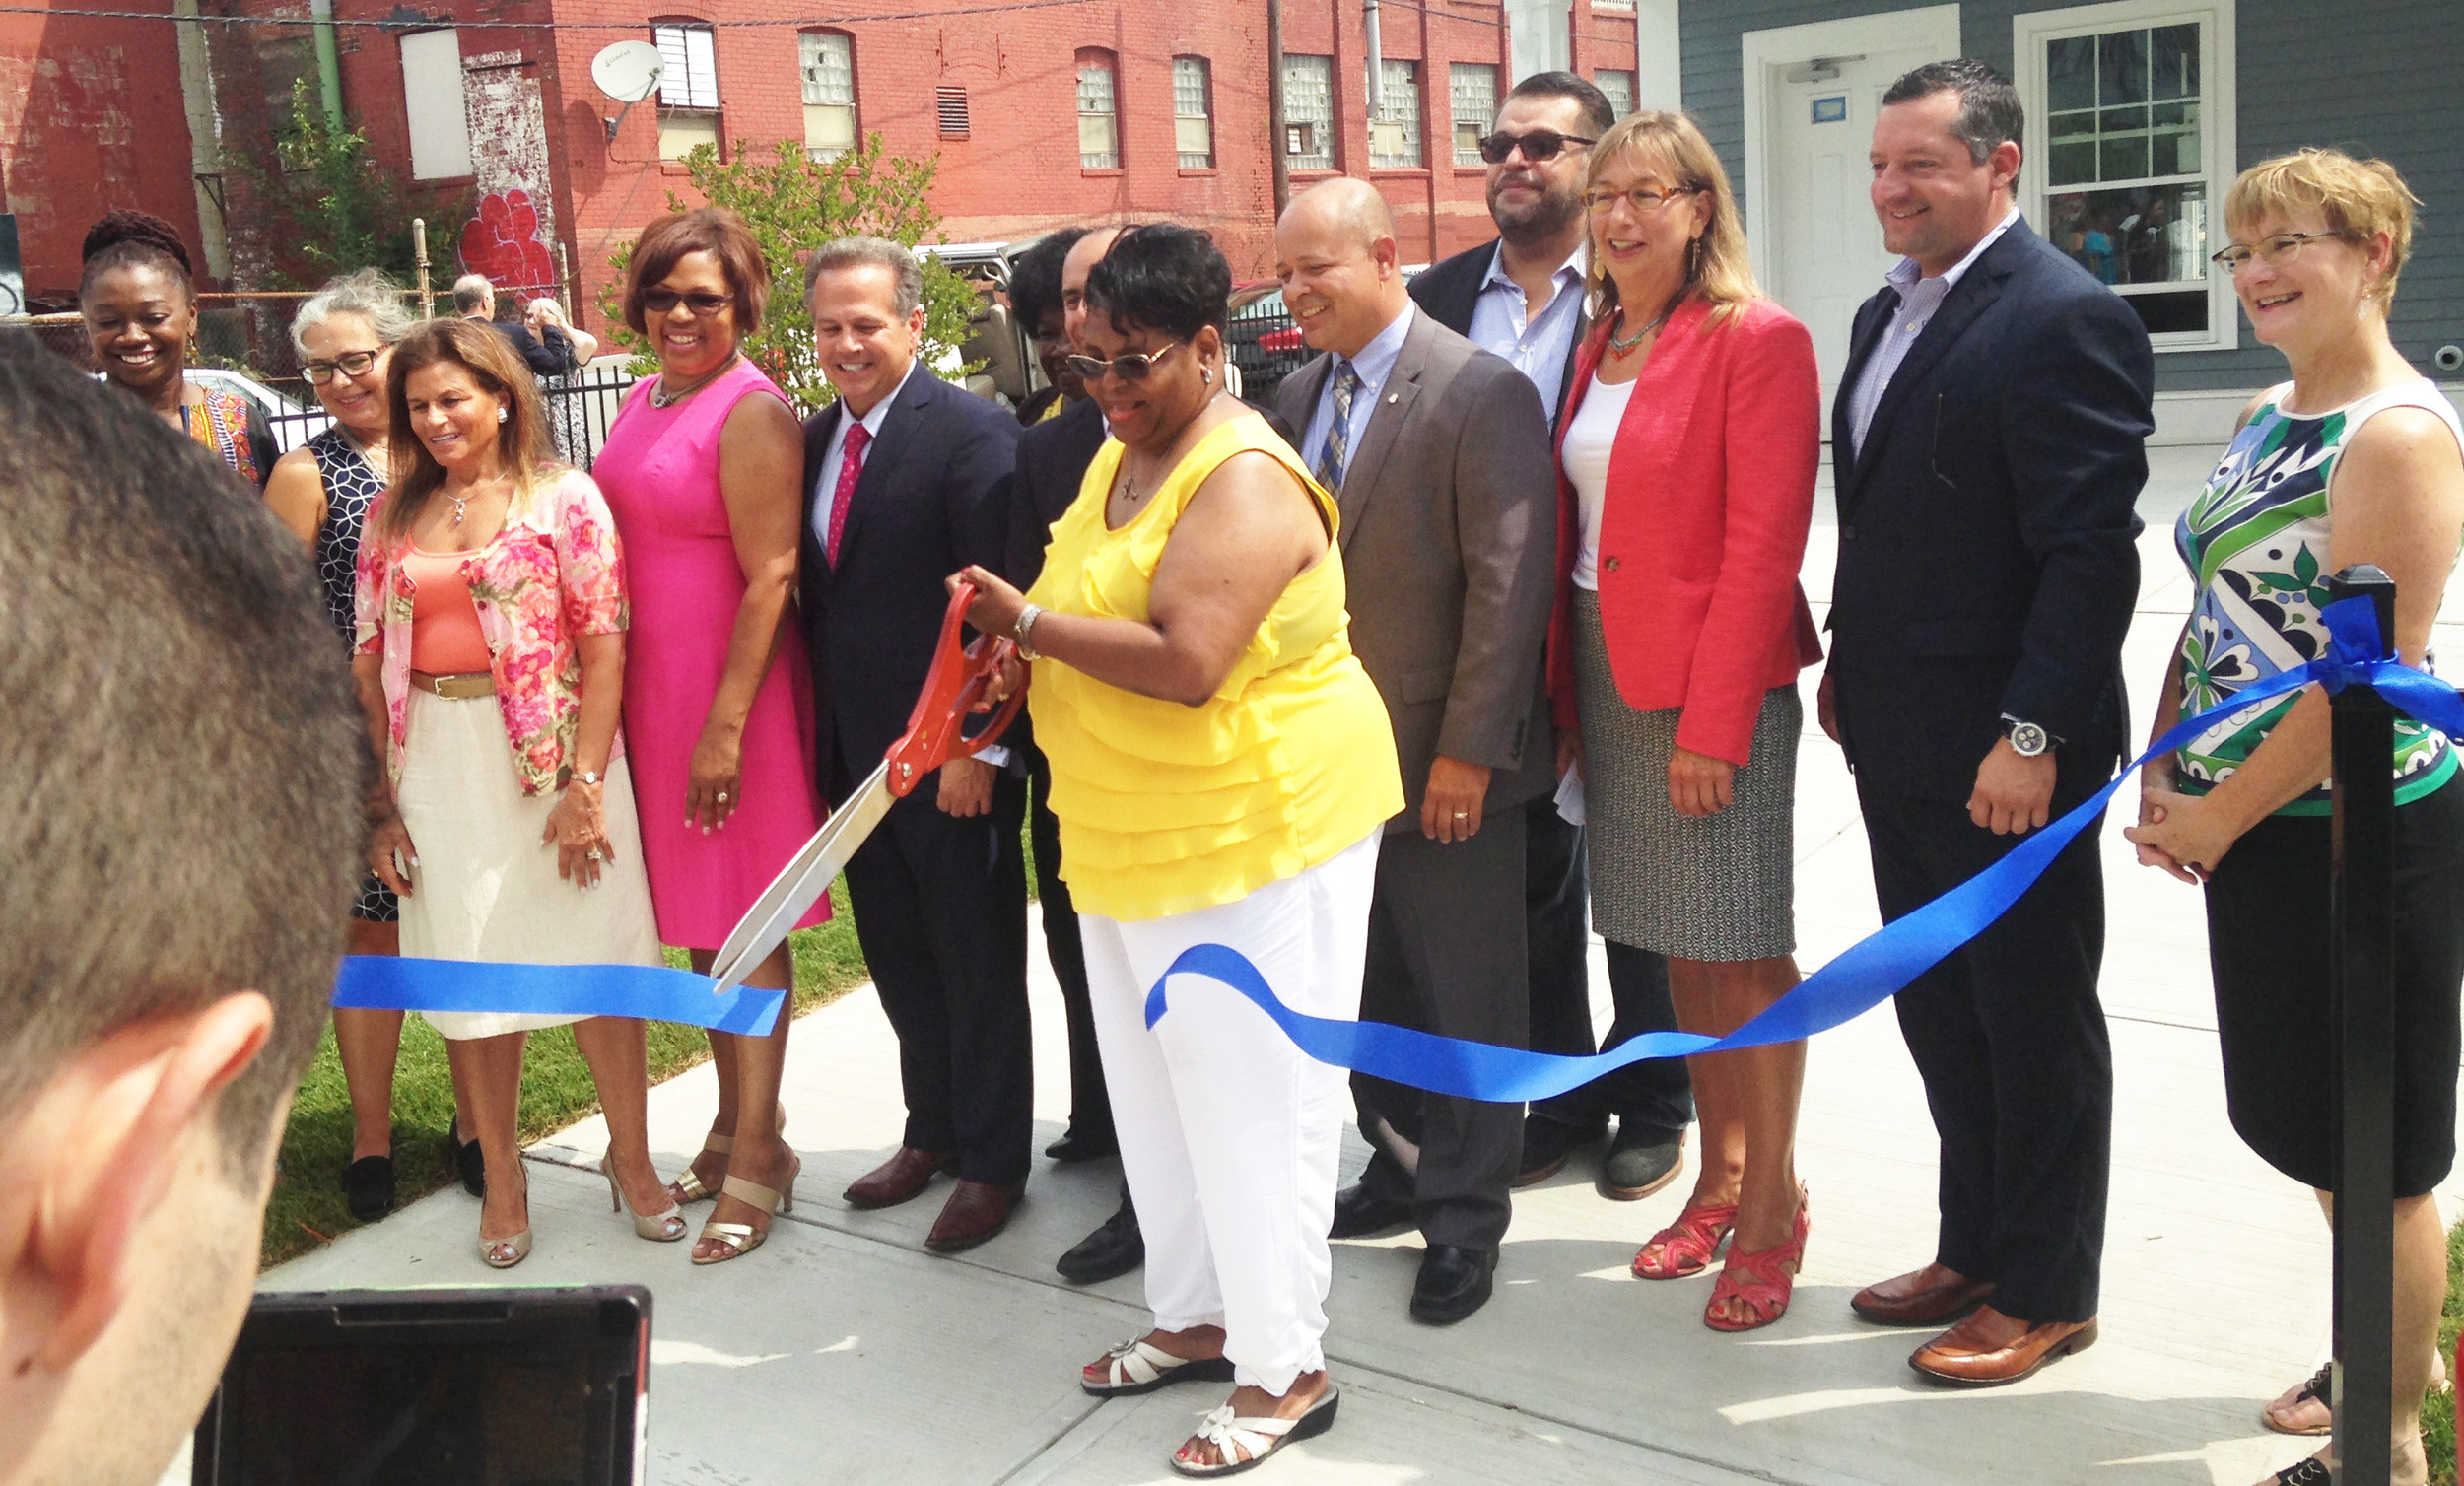 Sharon Conard-Wells of West Elmwood Housing Development Corporation cuts the ribbon to celebration the completion of a new 50 units of affordable housing, surrounded by supporters, investors and officials.